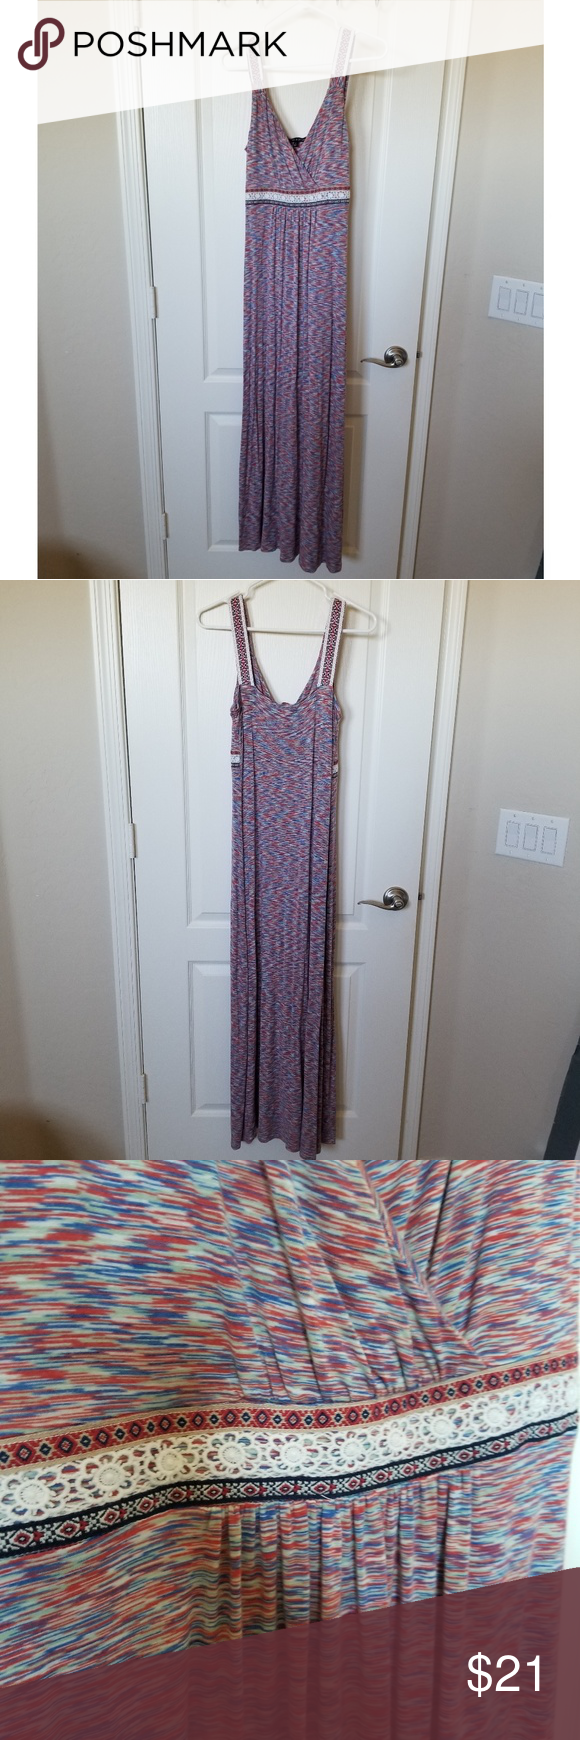 27+ Cable and gauge maxi dress inspirations